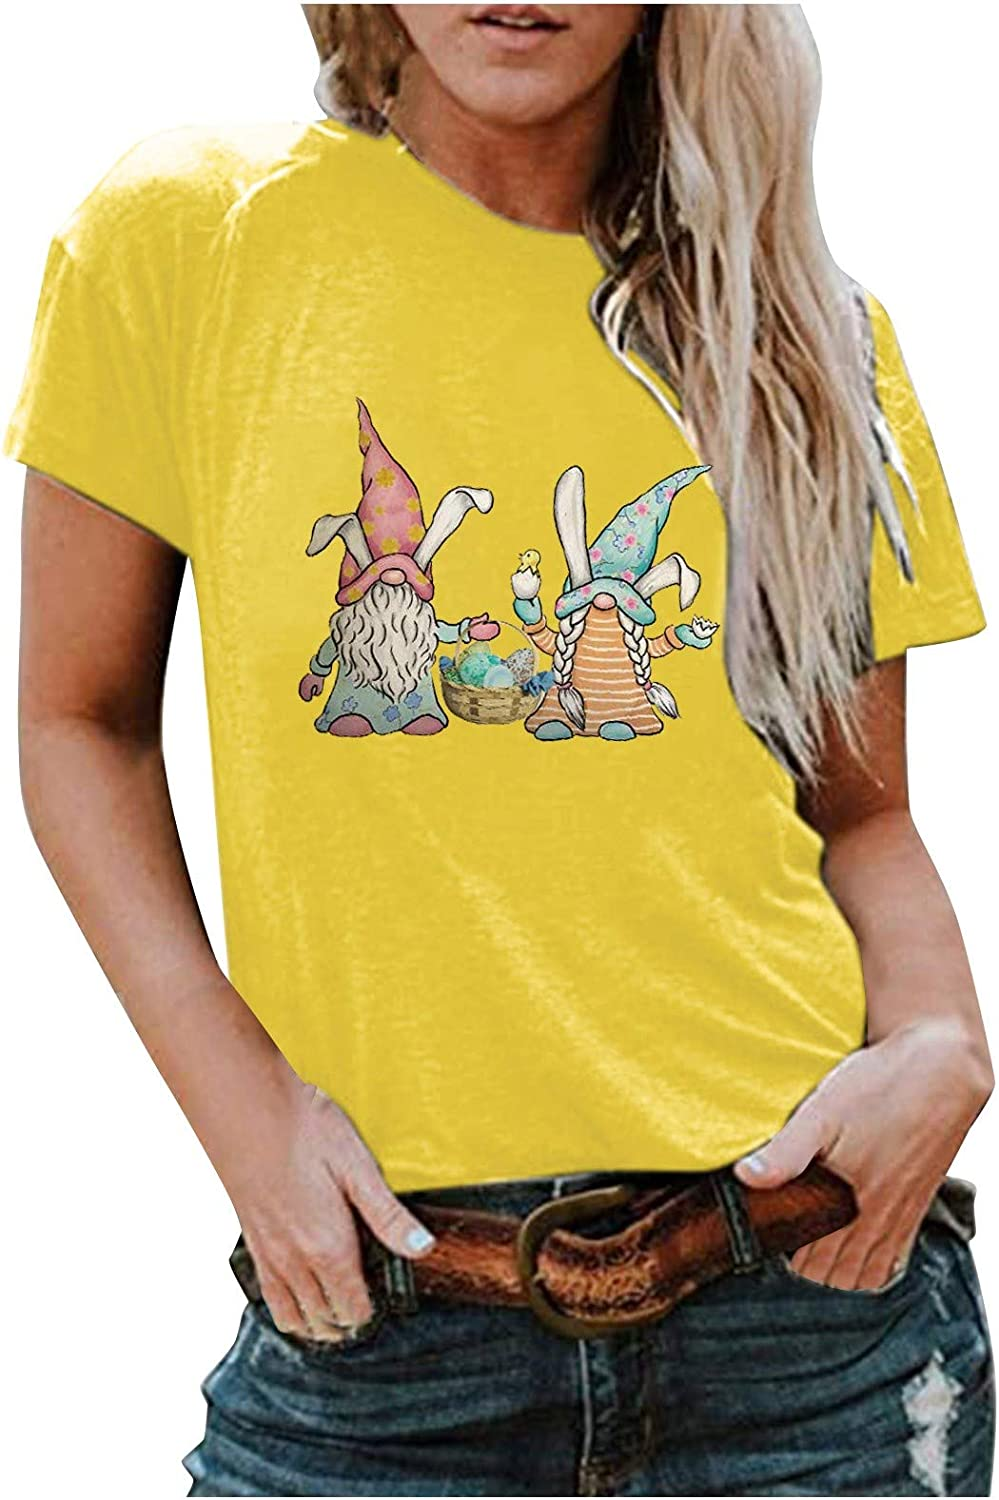 Womens Easter T Some reservation Trust Shirts Women's Bunny To Tee Print Graphic Letter